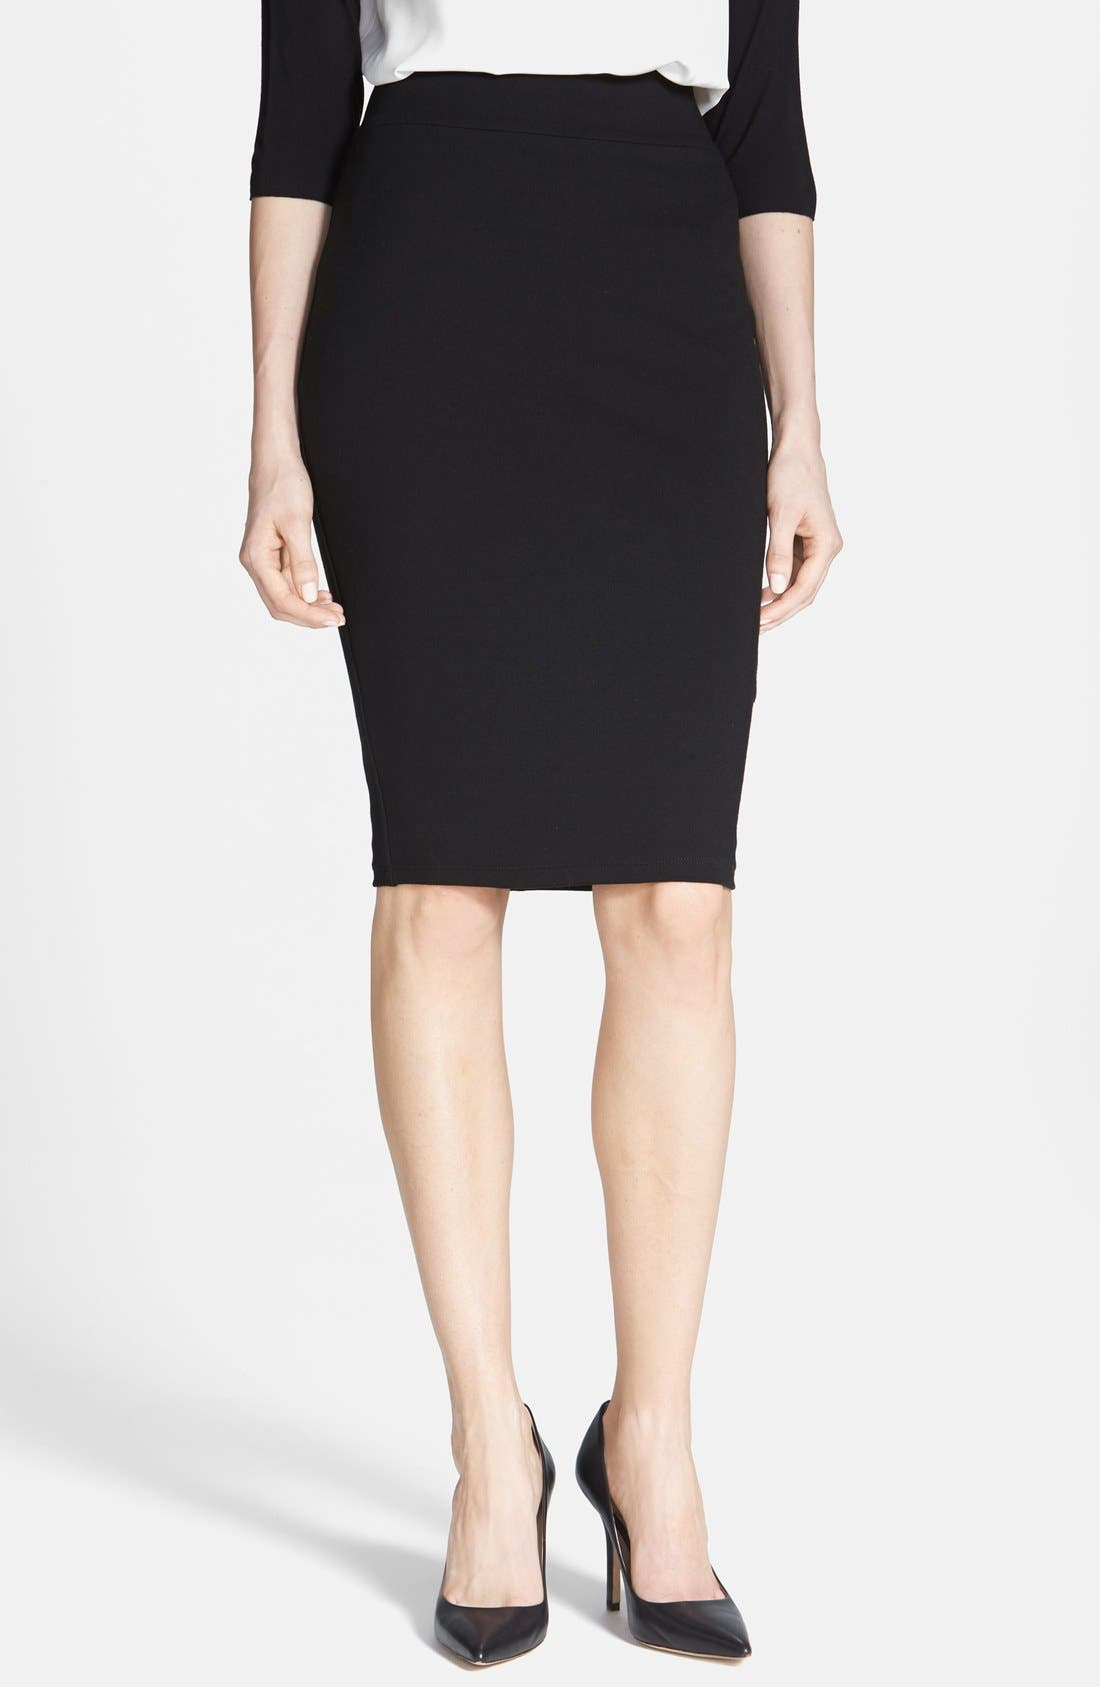 Alternate Image 1 Selected - Bailey 44 'Style Me' Knit Pencil Skirt